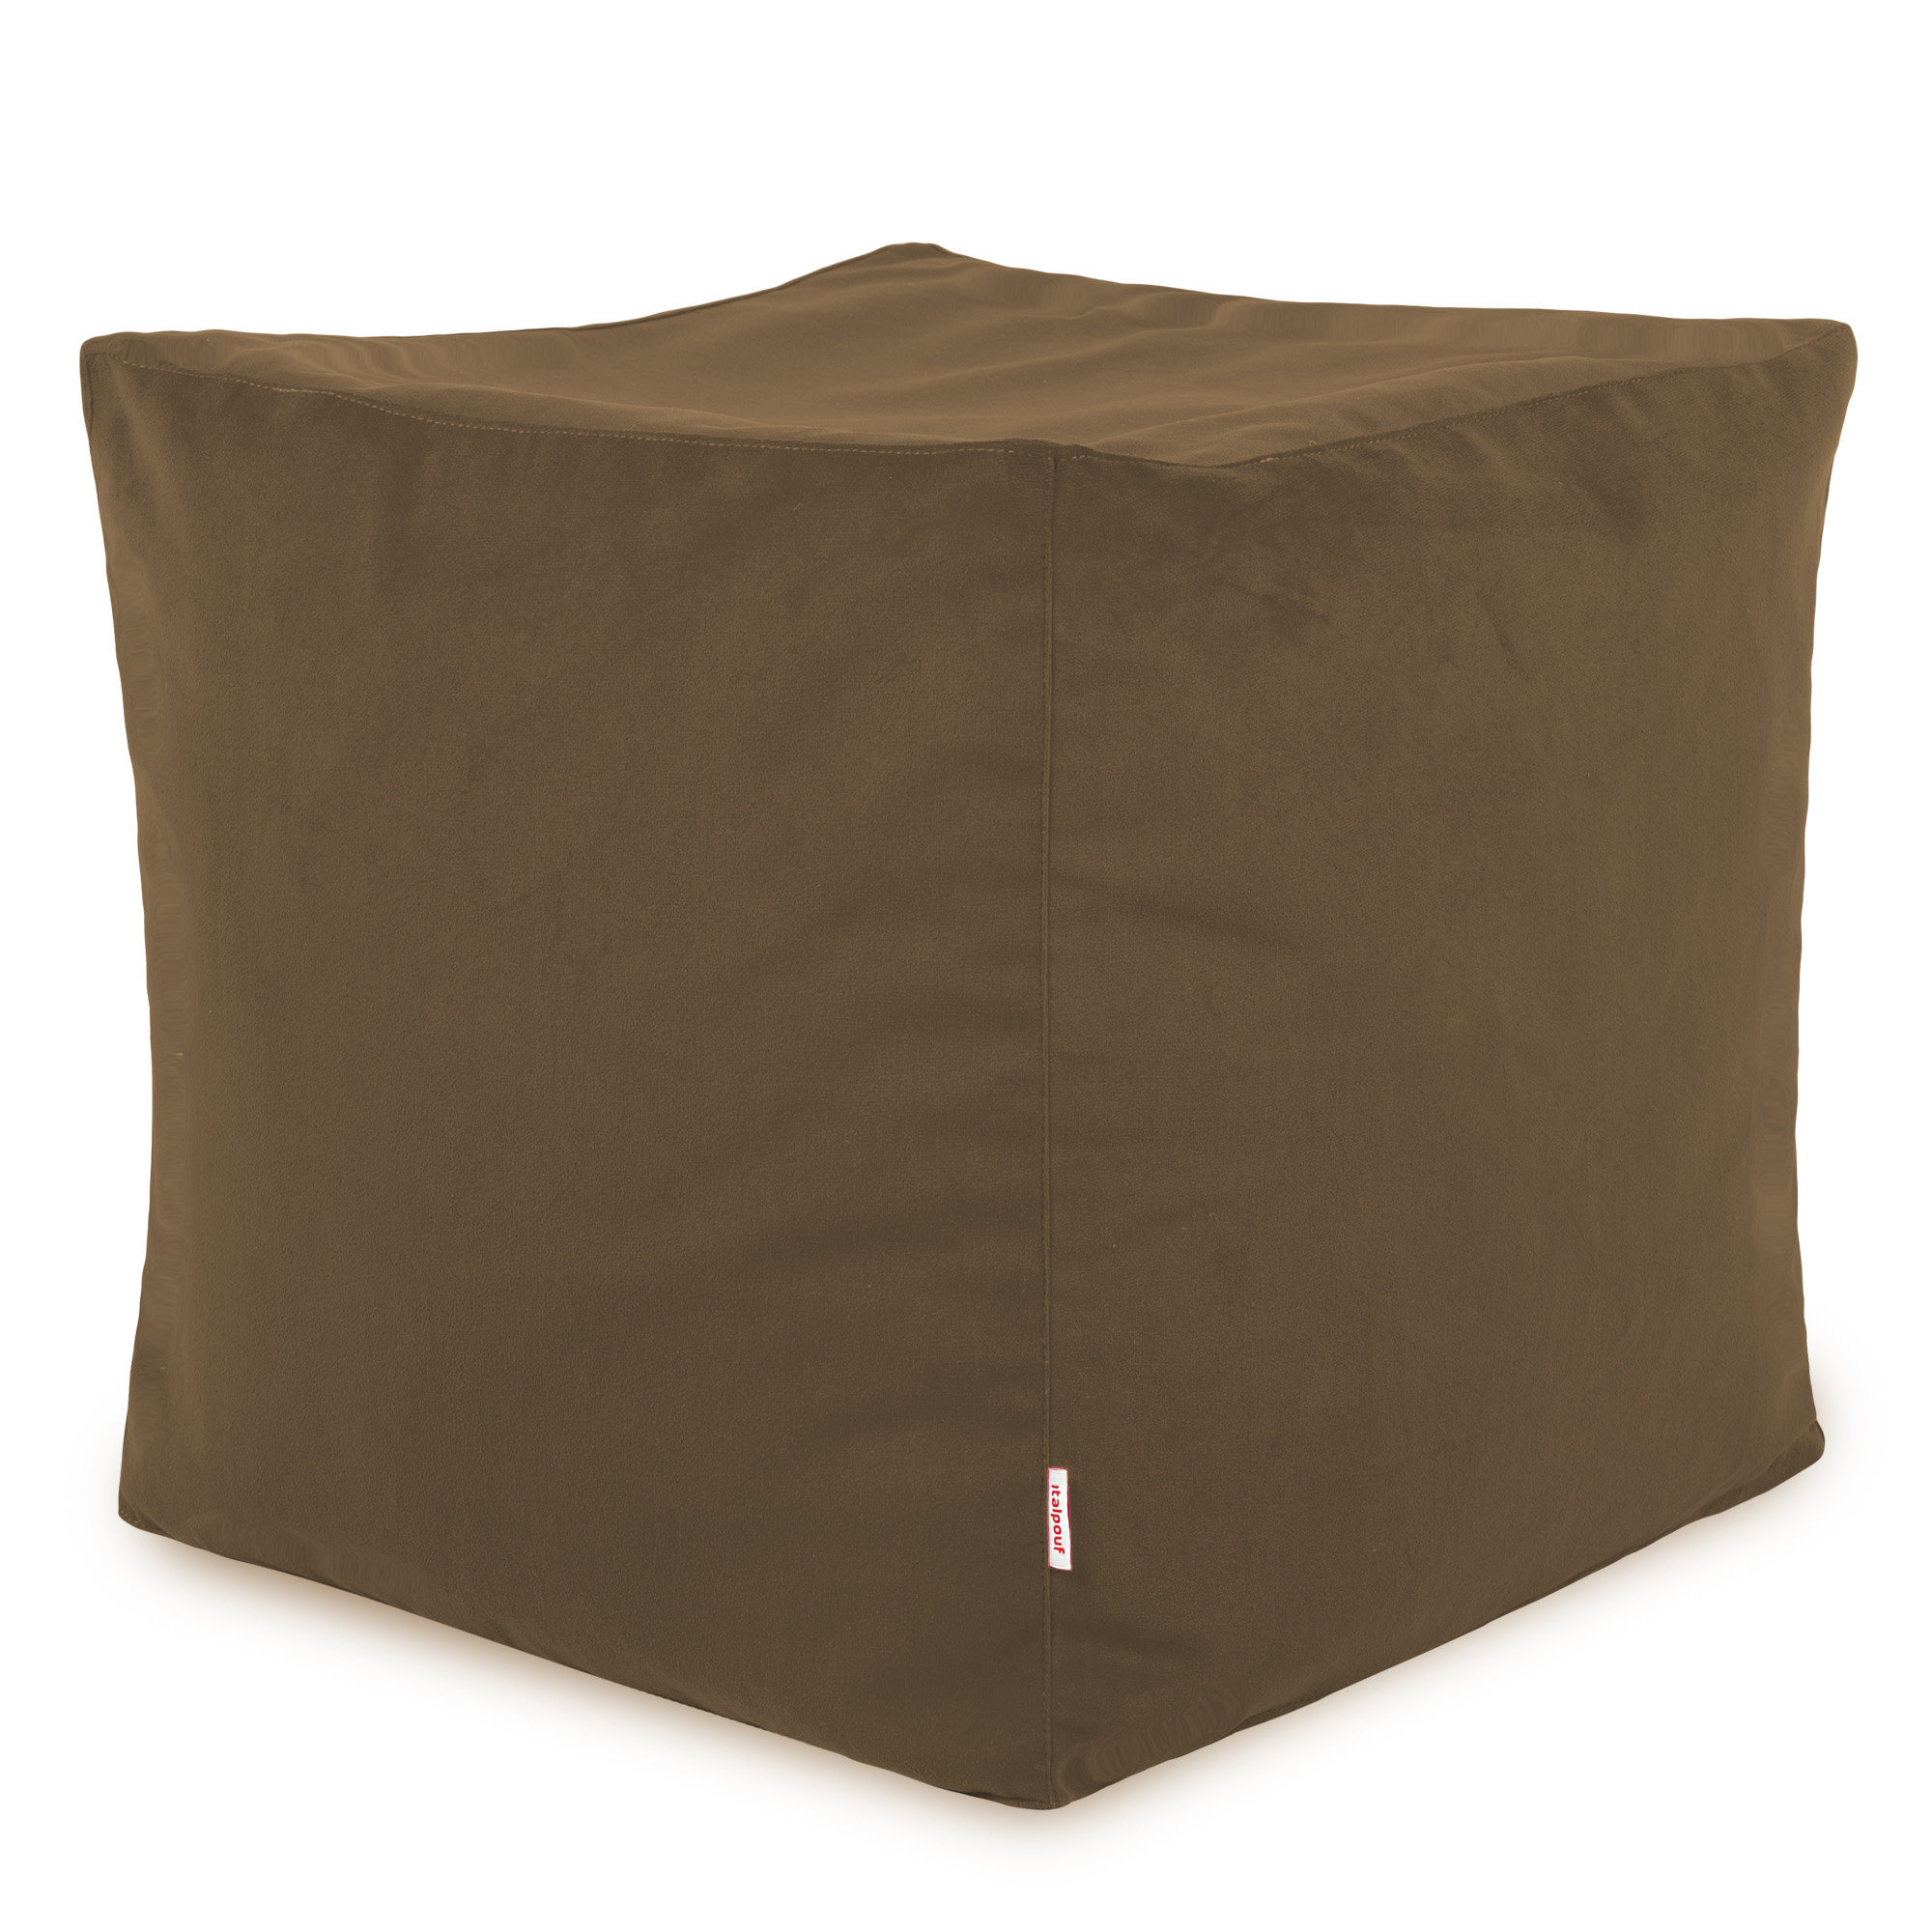 Pouf sacco xxl grande e morbido pouf design da salotto for Cuscini a rullo ikea